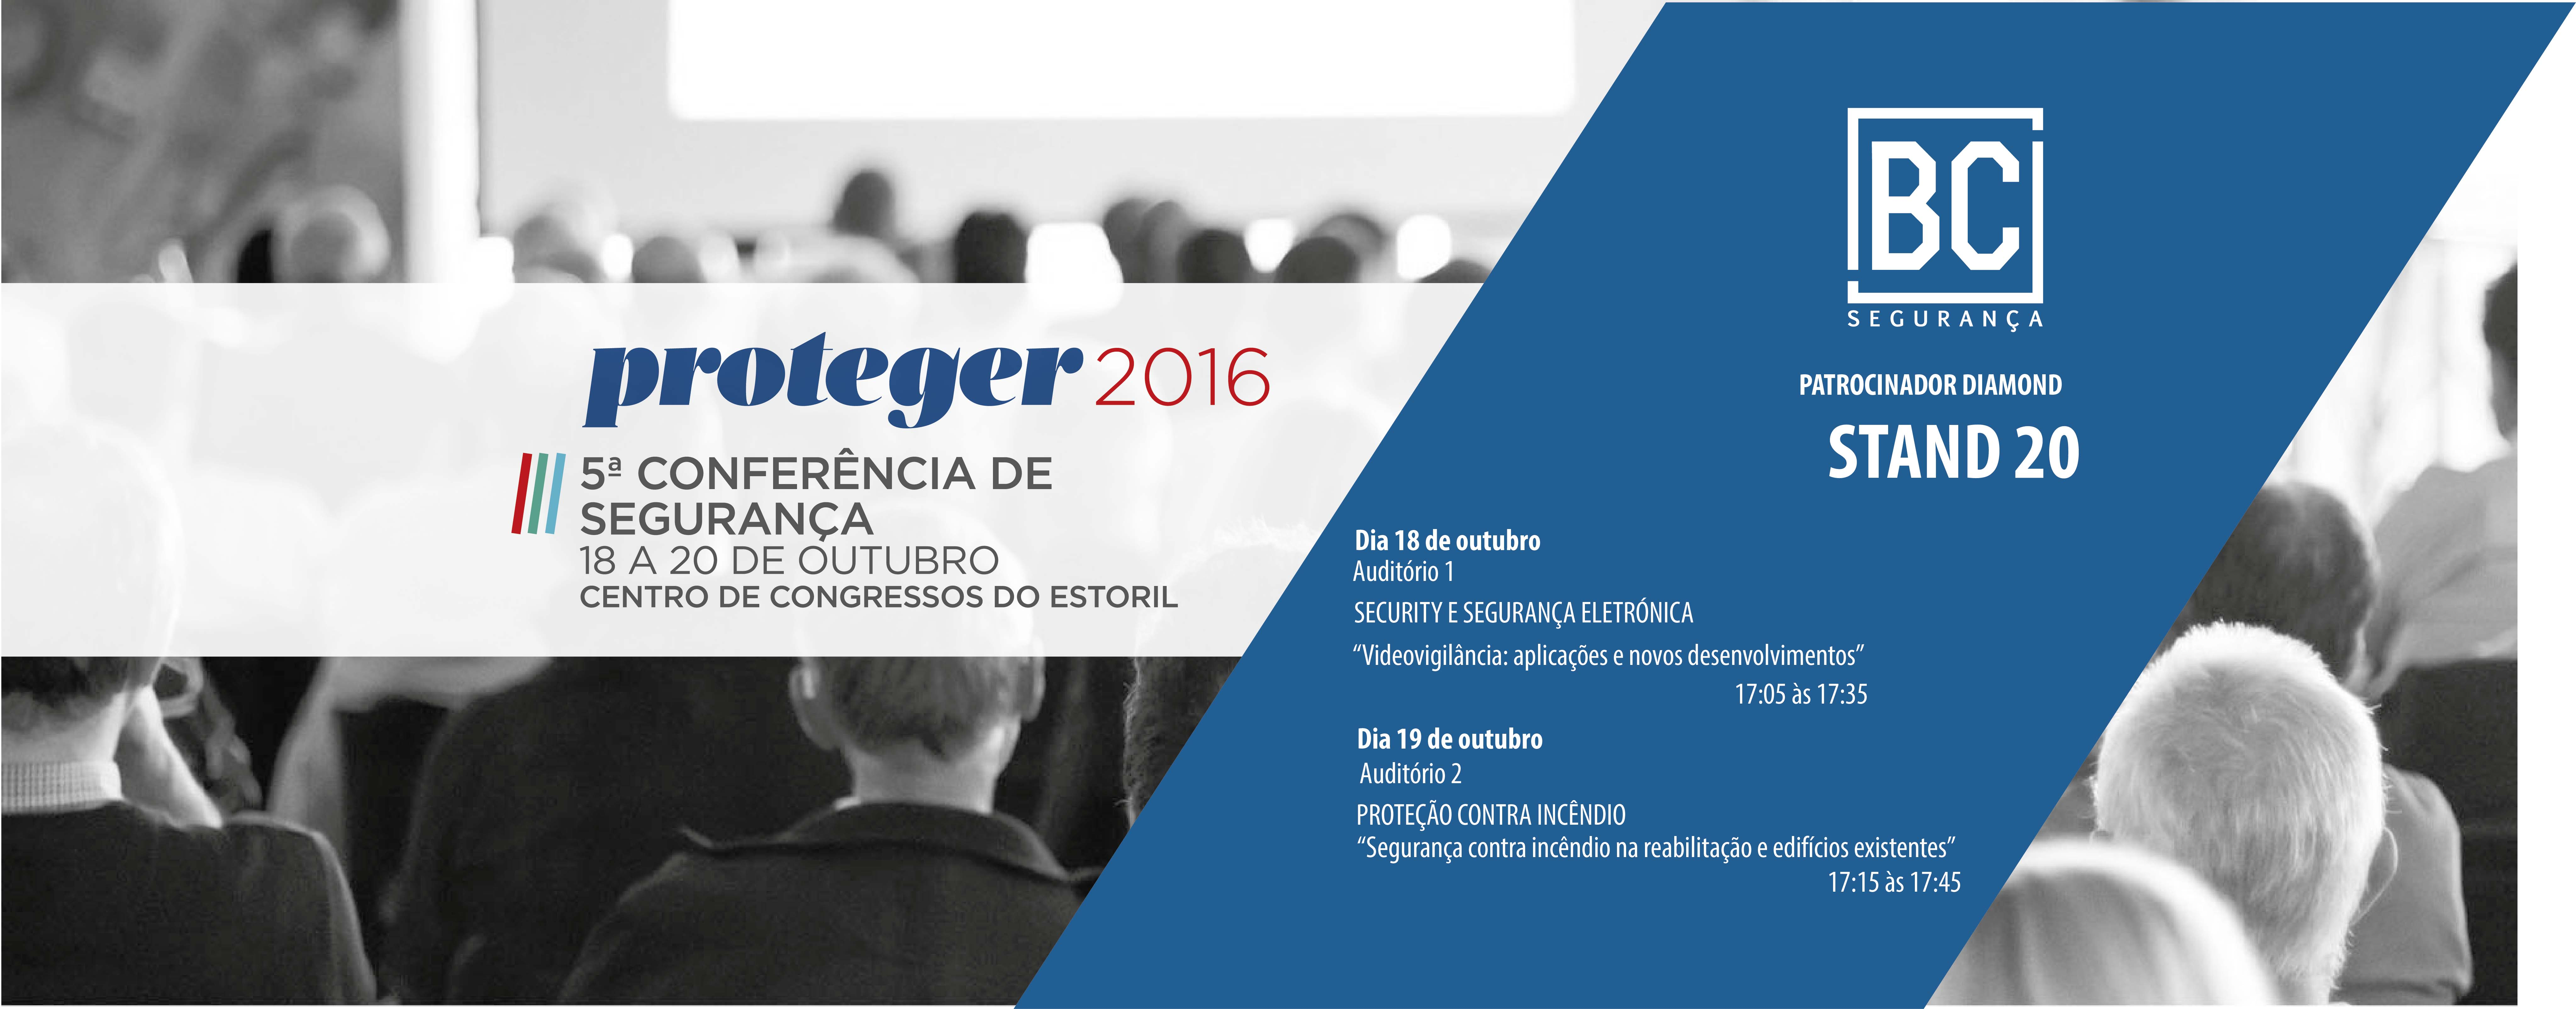 PROTEGER 2016